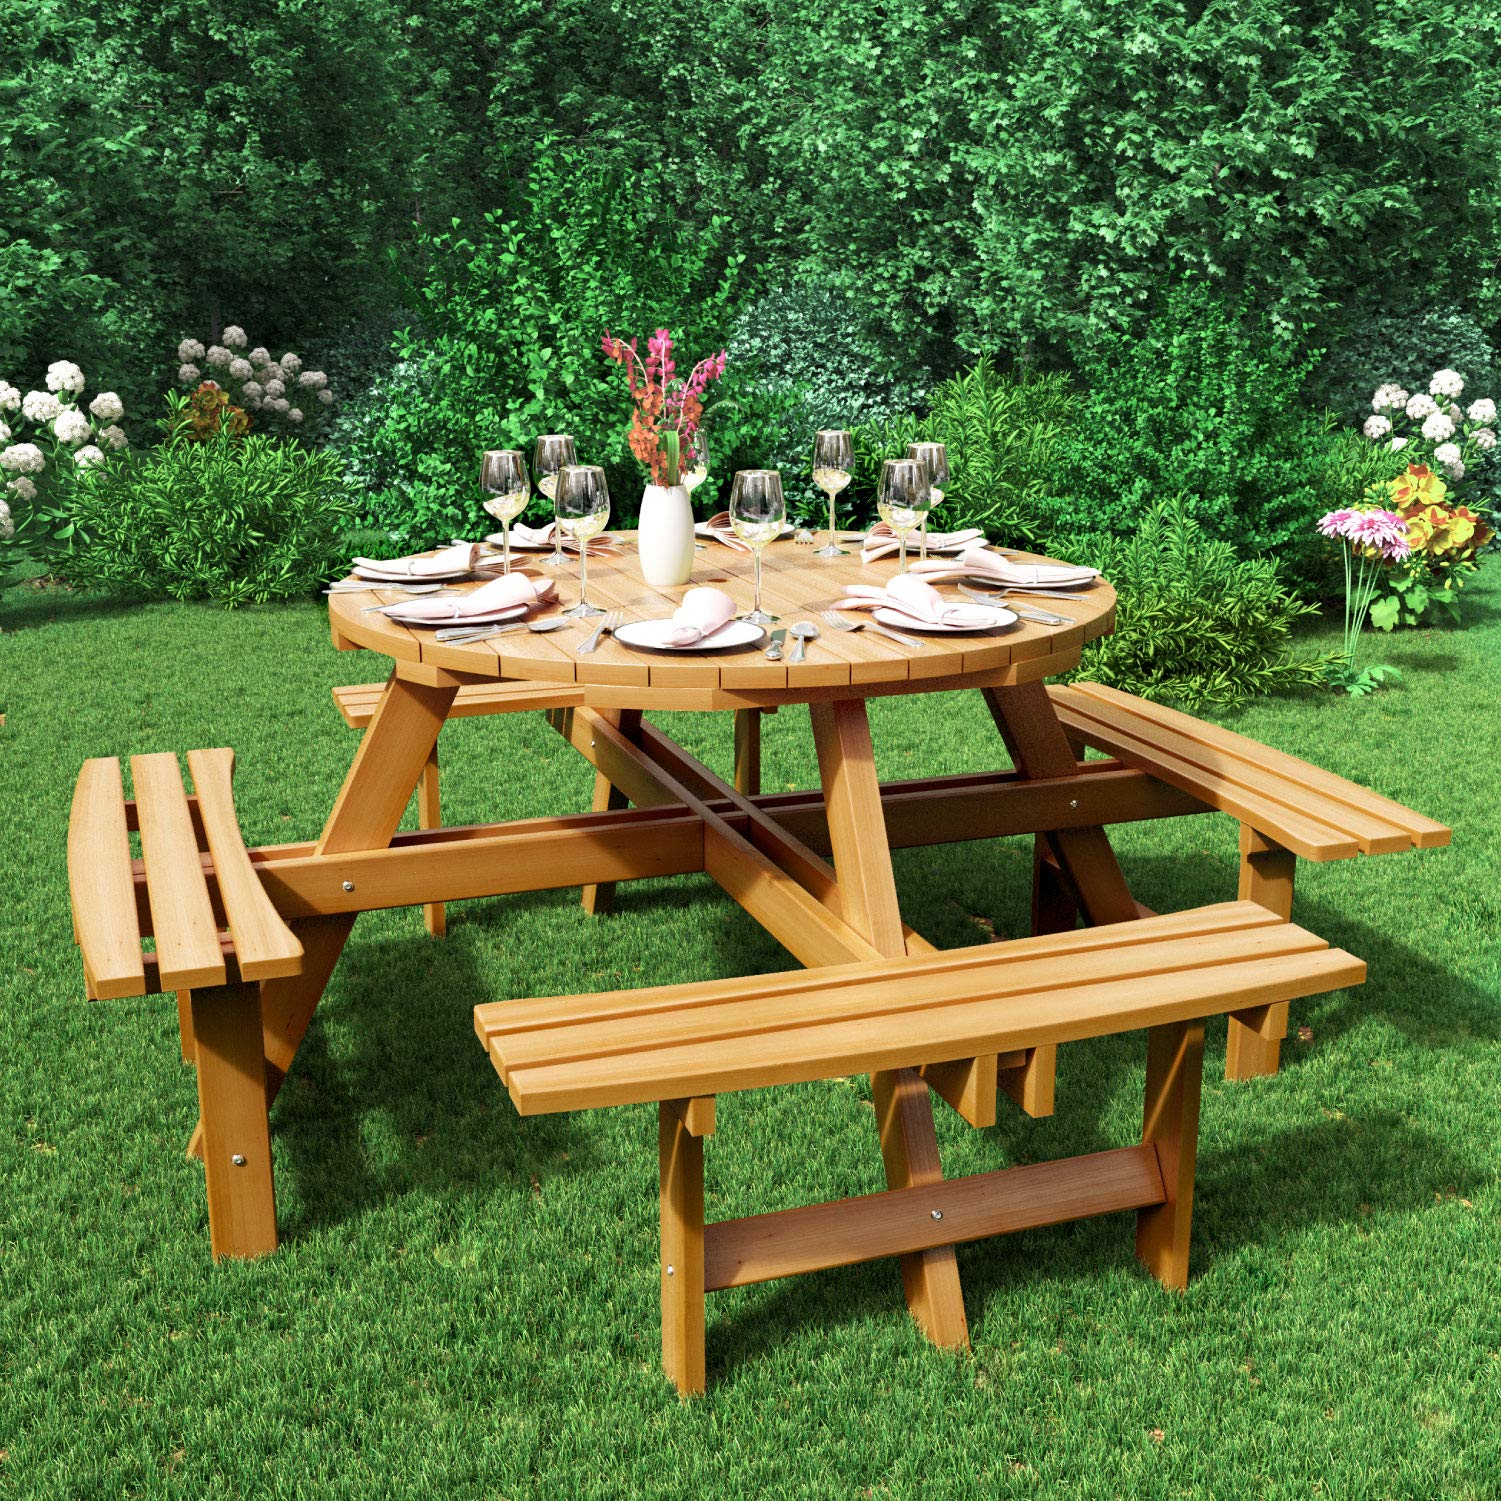 BillyOh 10 Seater Picnic Table, Large Round Wooden Garden Pub Patio Dining  Table